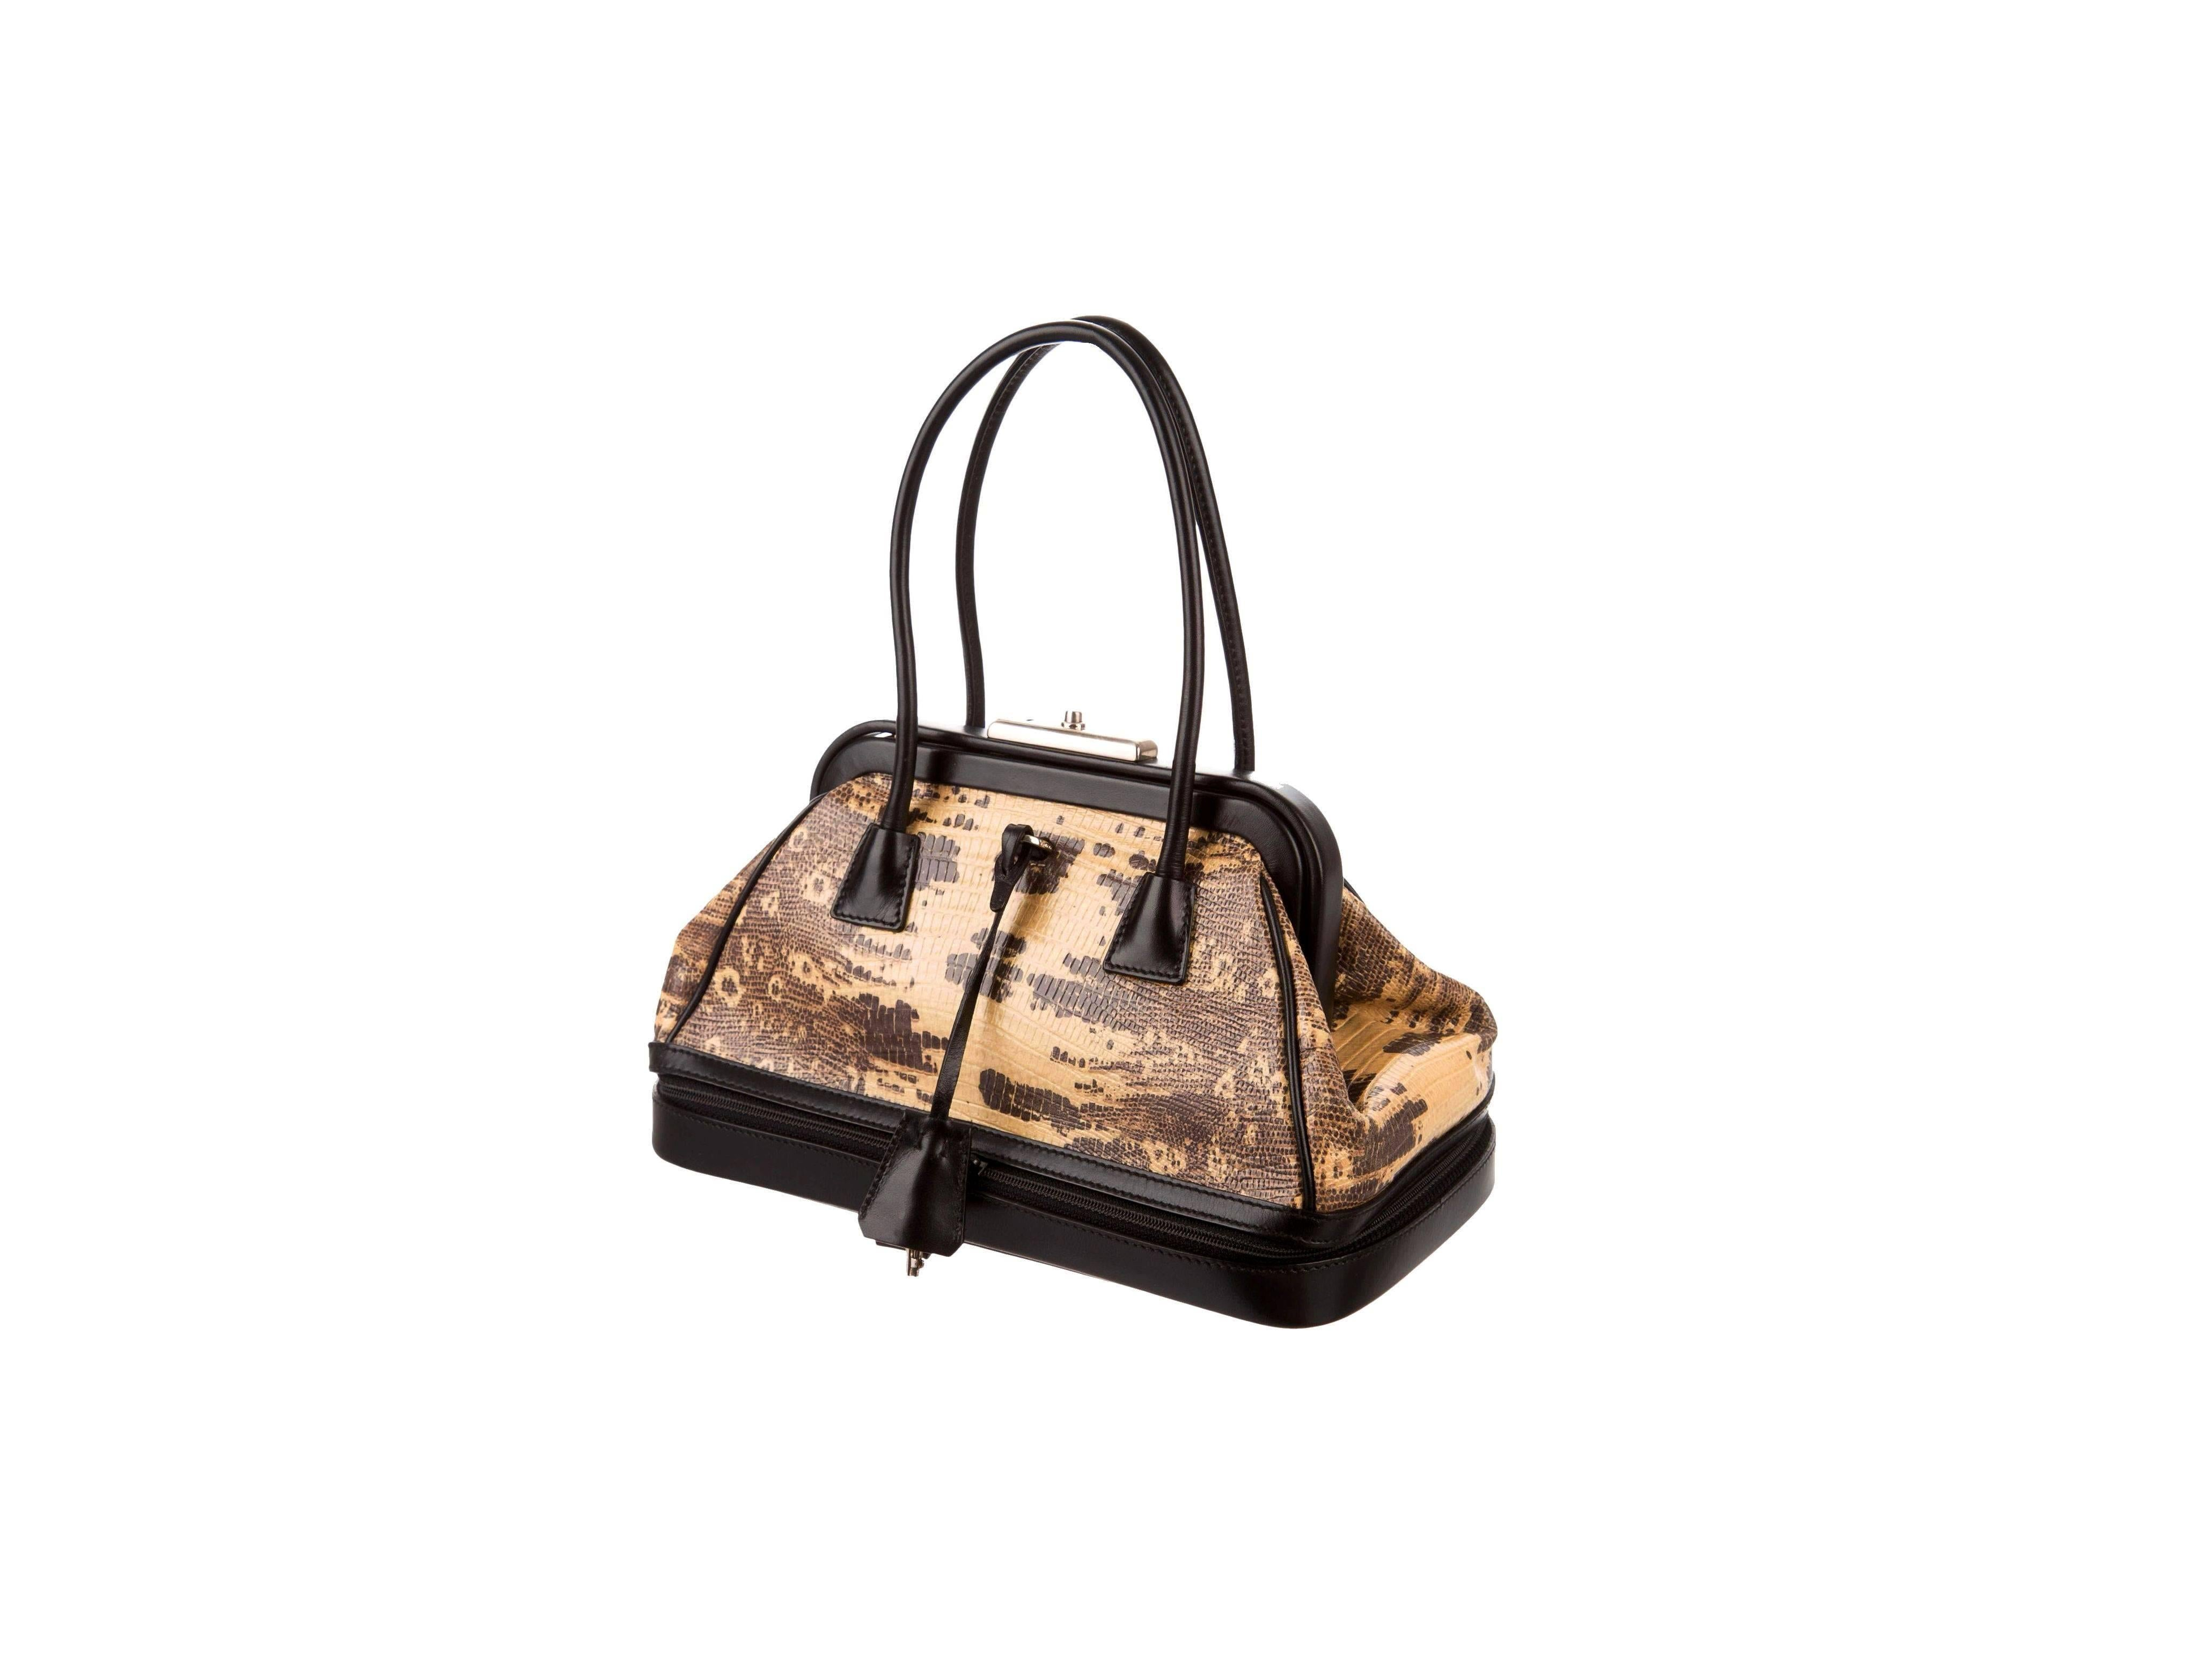 Prada Exotic Doctor Frame Bag Purse With Extra Compartment And Lock & Keys KWZEDoLE